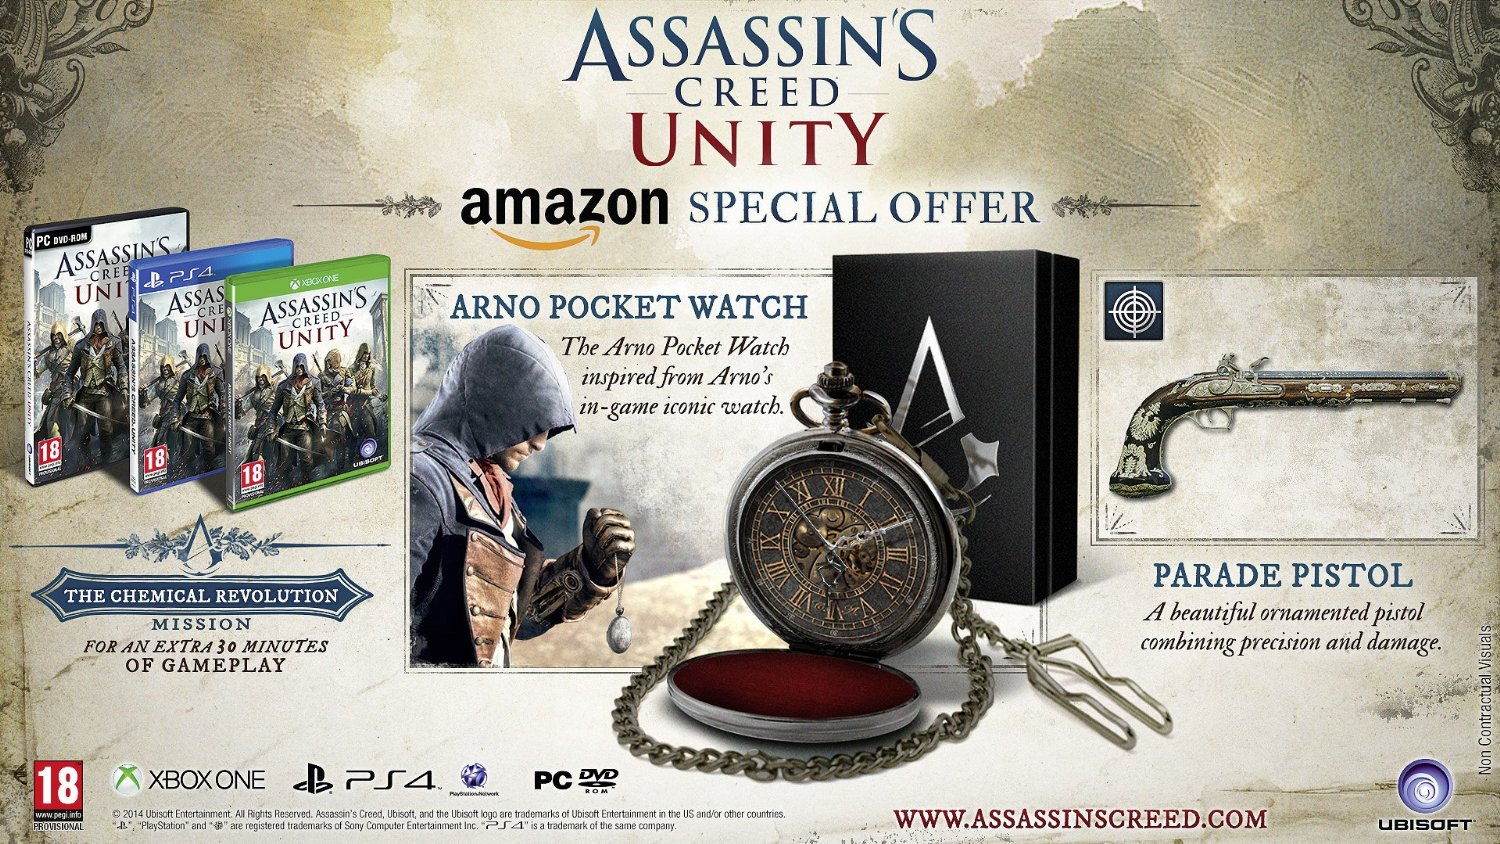 Assassin s creed unity review next available slot assassin s creed - Assassin S Creed Unity Amazon Edition